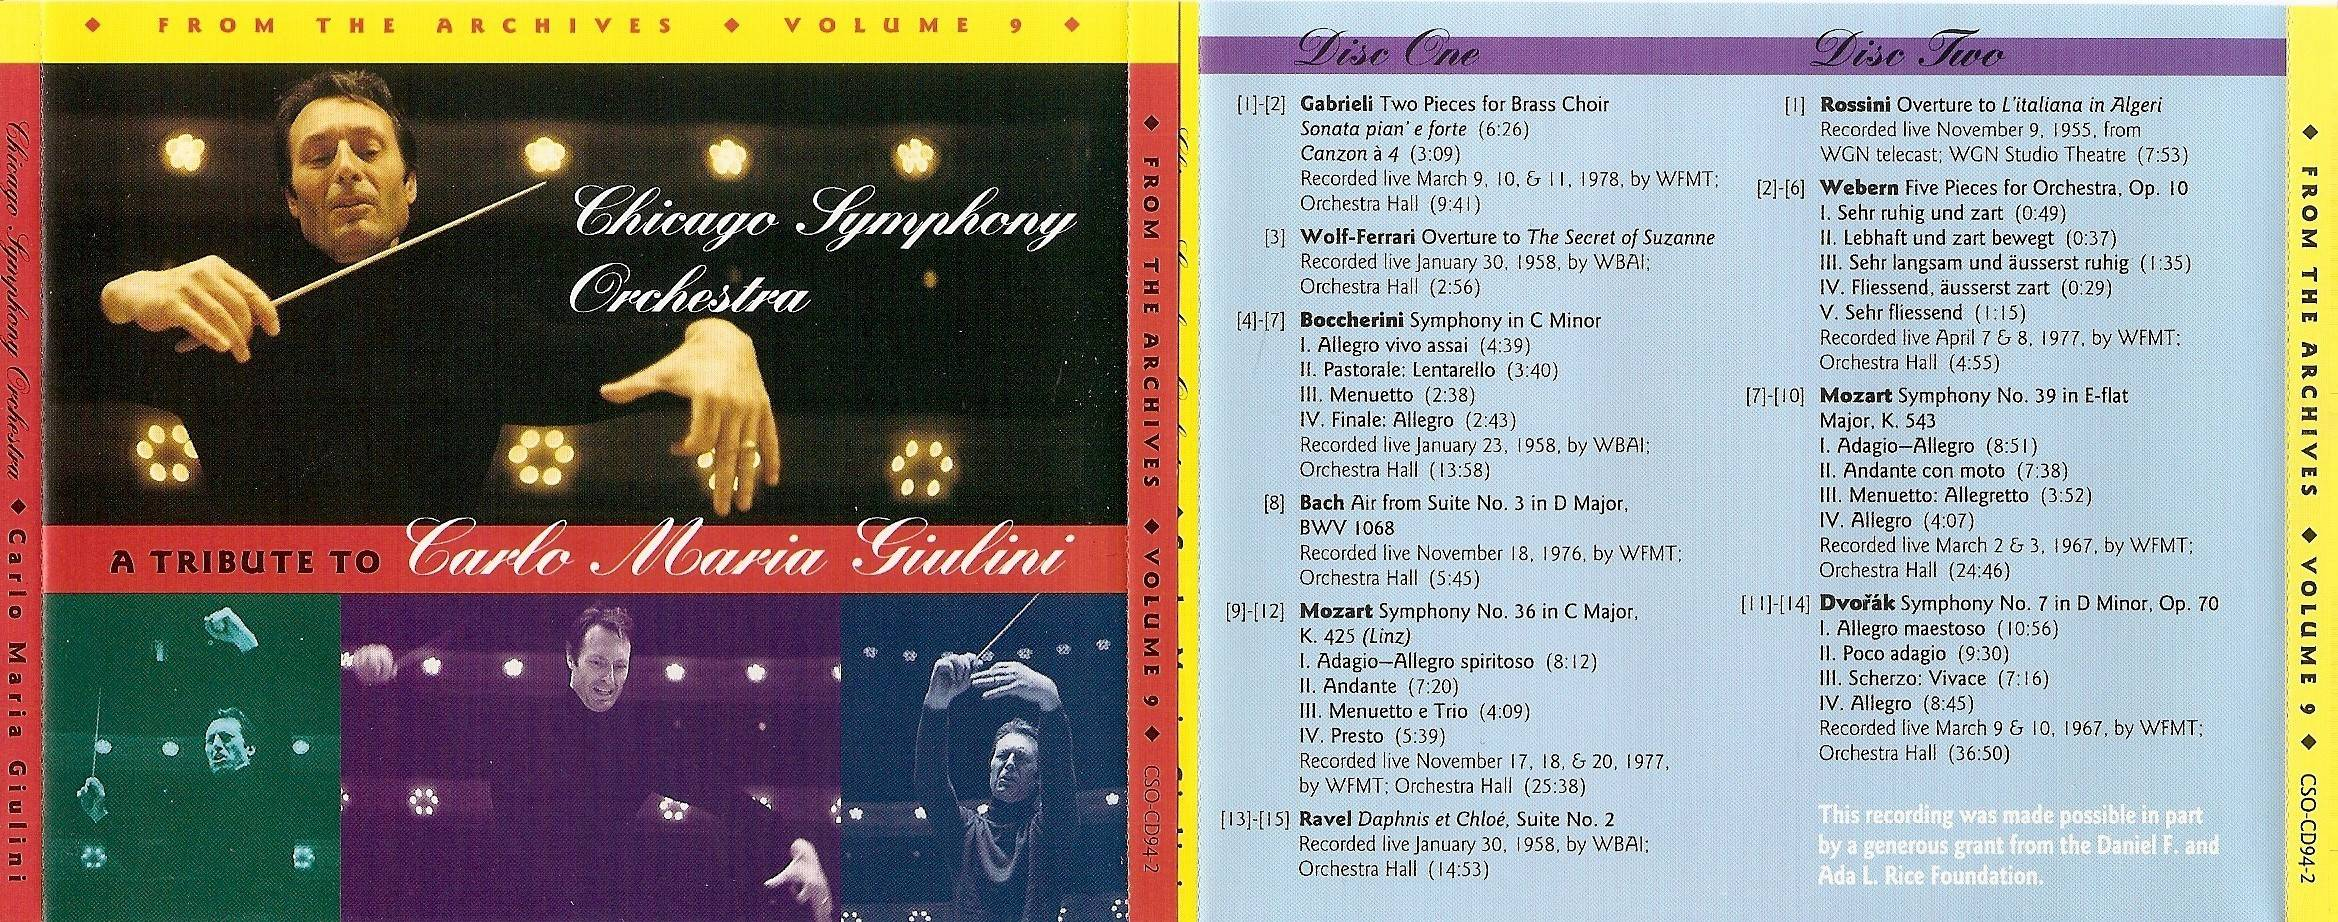 Chicago Symphony Orchestra - From The Archives, Vol.9: A Tribute to Carlo Maria Giulini, 2-CD set (1994)